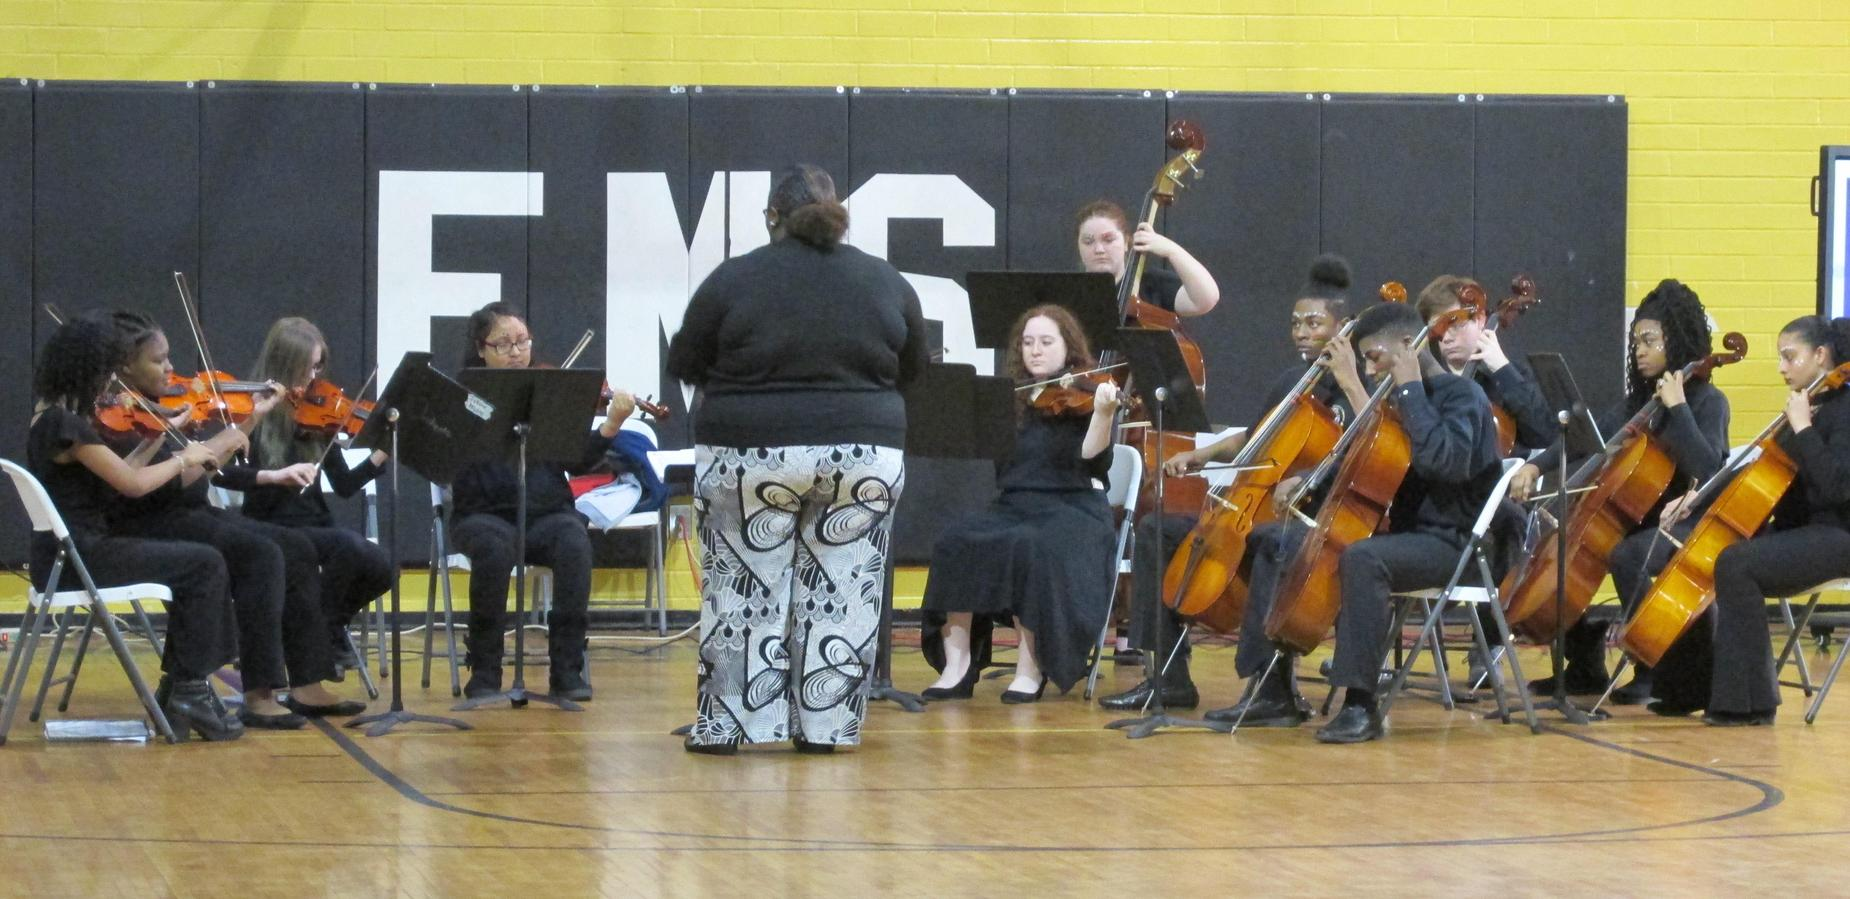 Ms. Wise's Orchestra student performing at the Black History Program